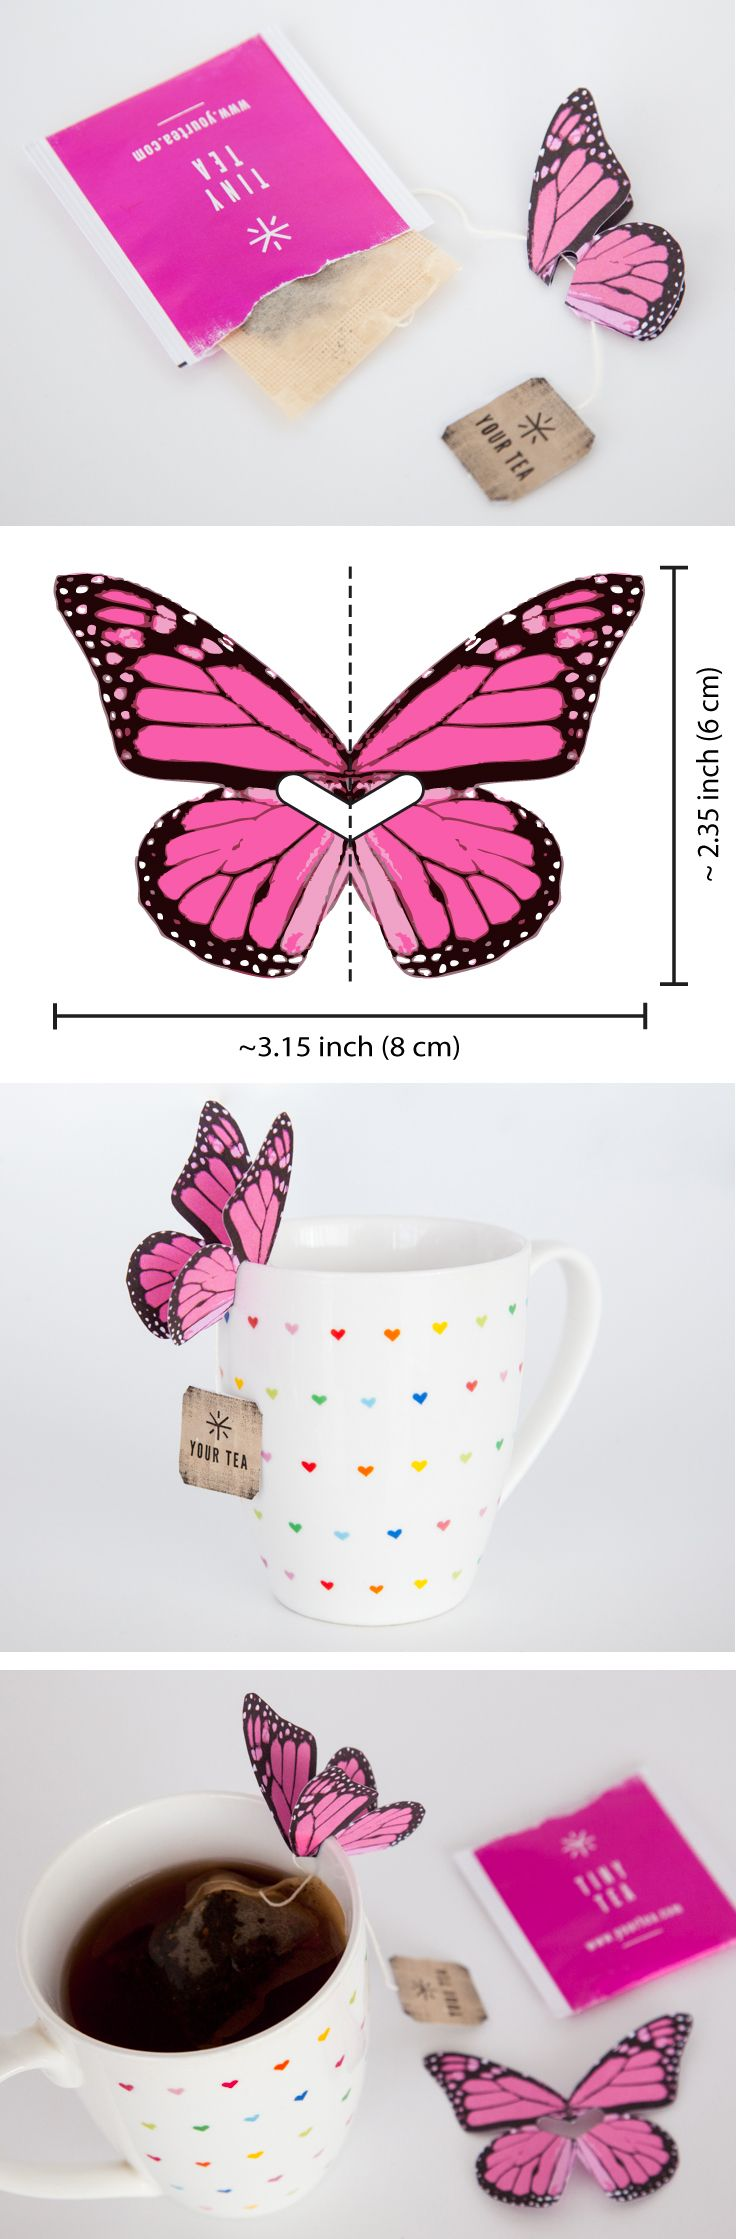 DIY paper butterfly tea bag holder PD